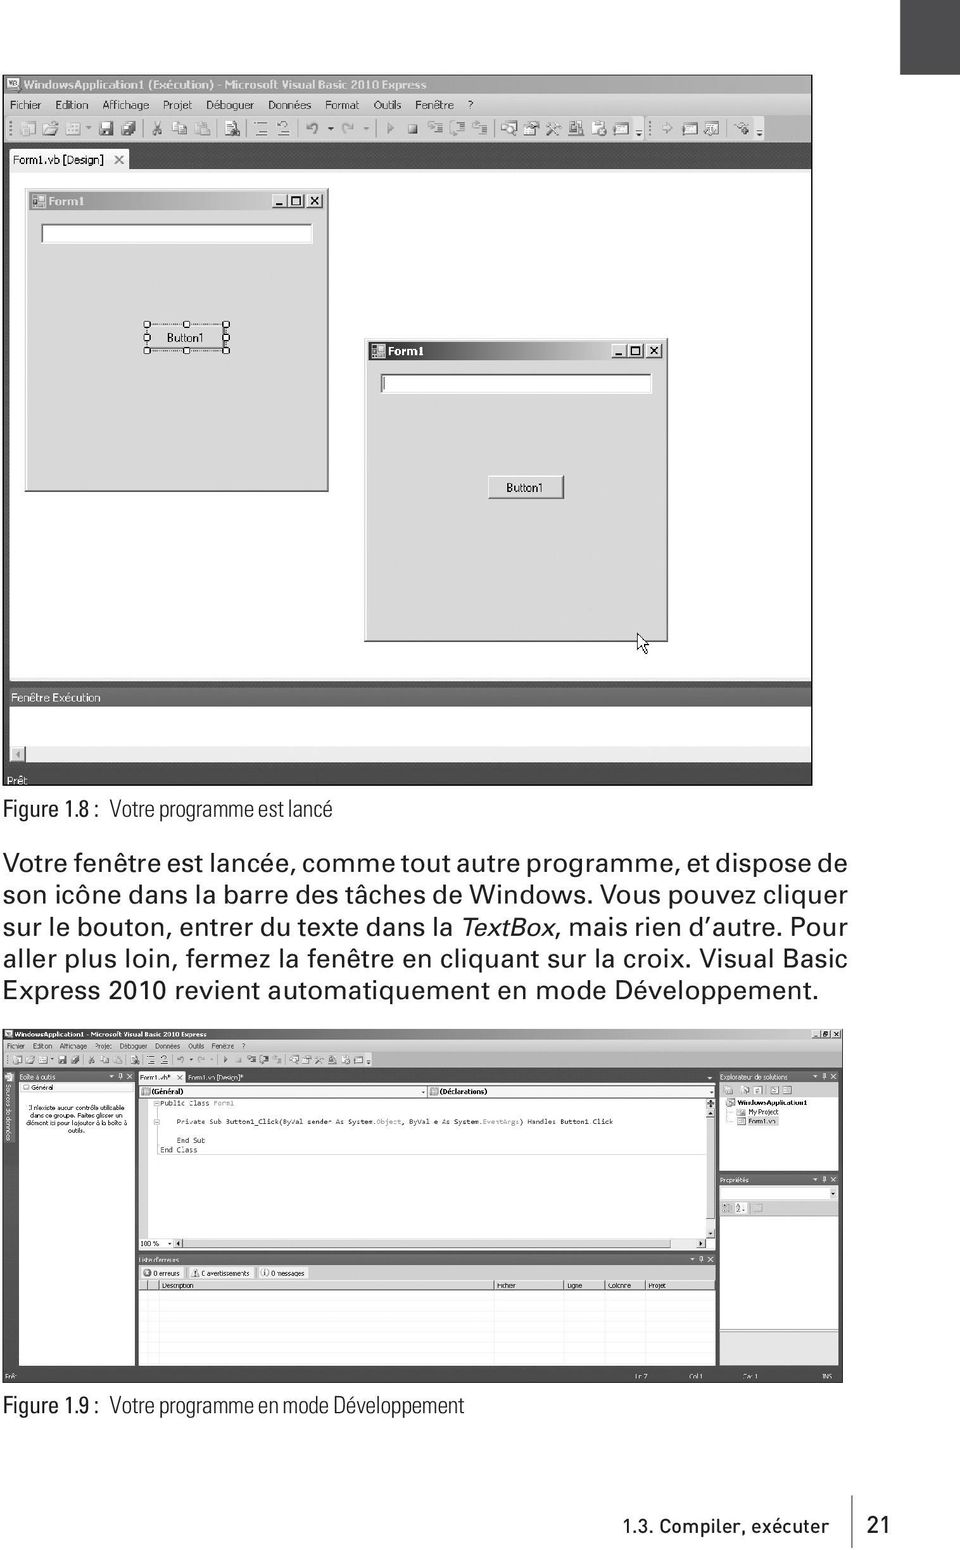 la barre des tâches de Windows.